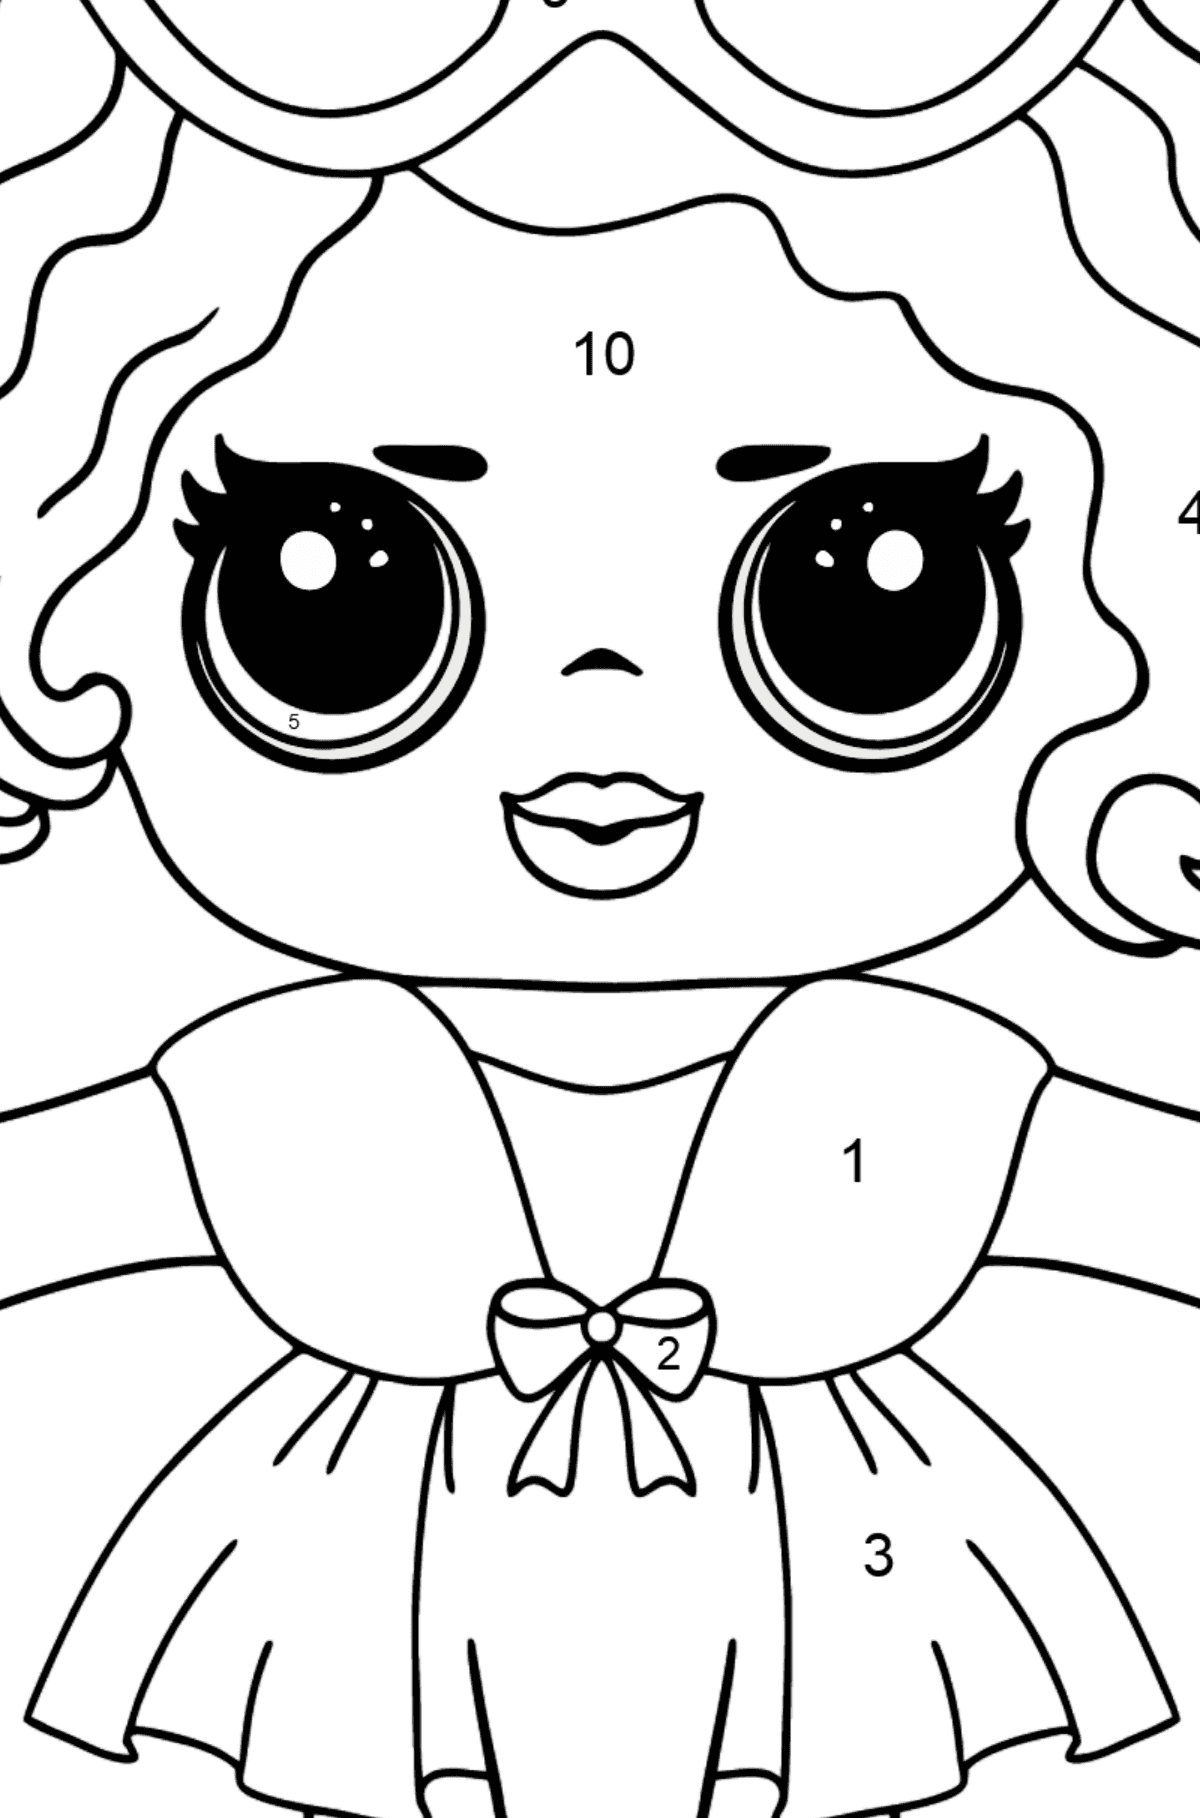 L.O.L. Surprise Doll Leading Baby - Coloring by Numbers for Kids